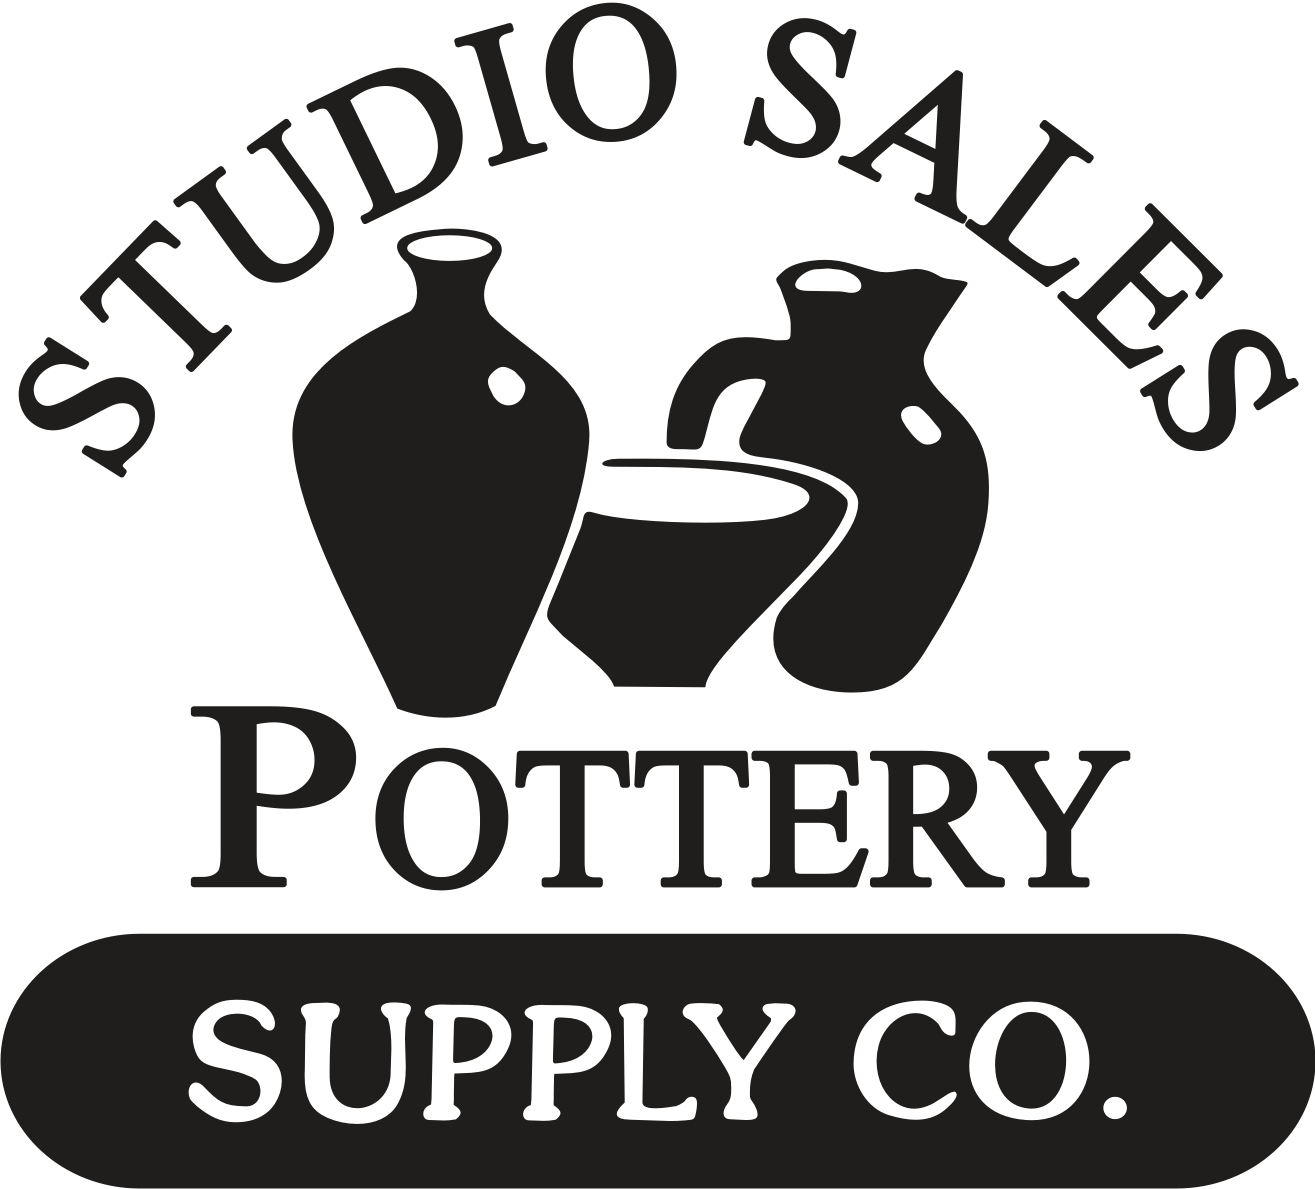 Studio Sales Pottery Supply Co.